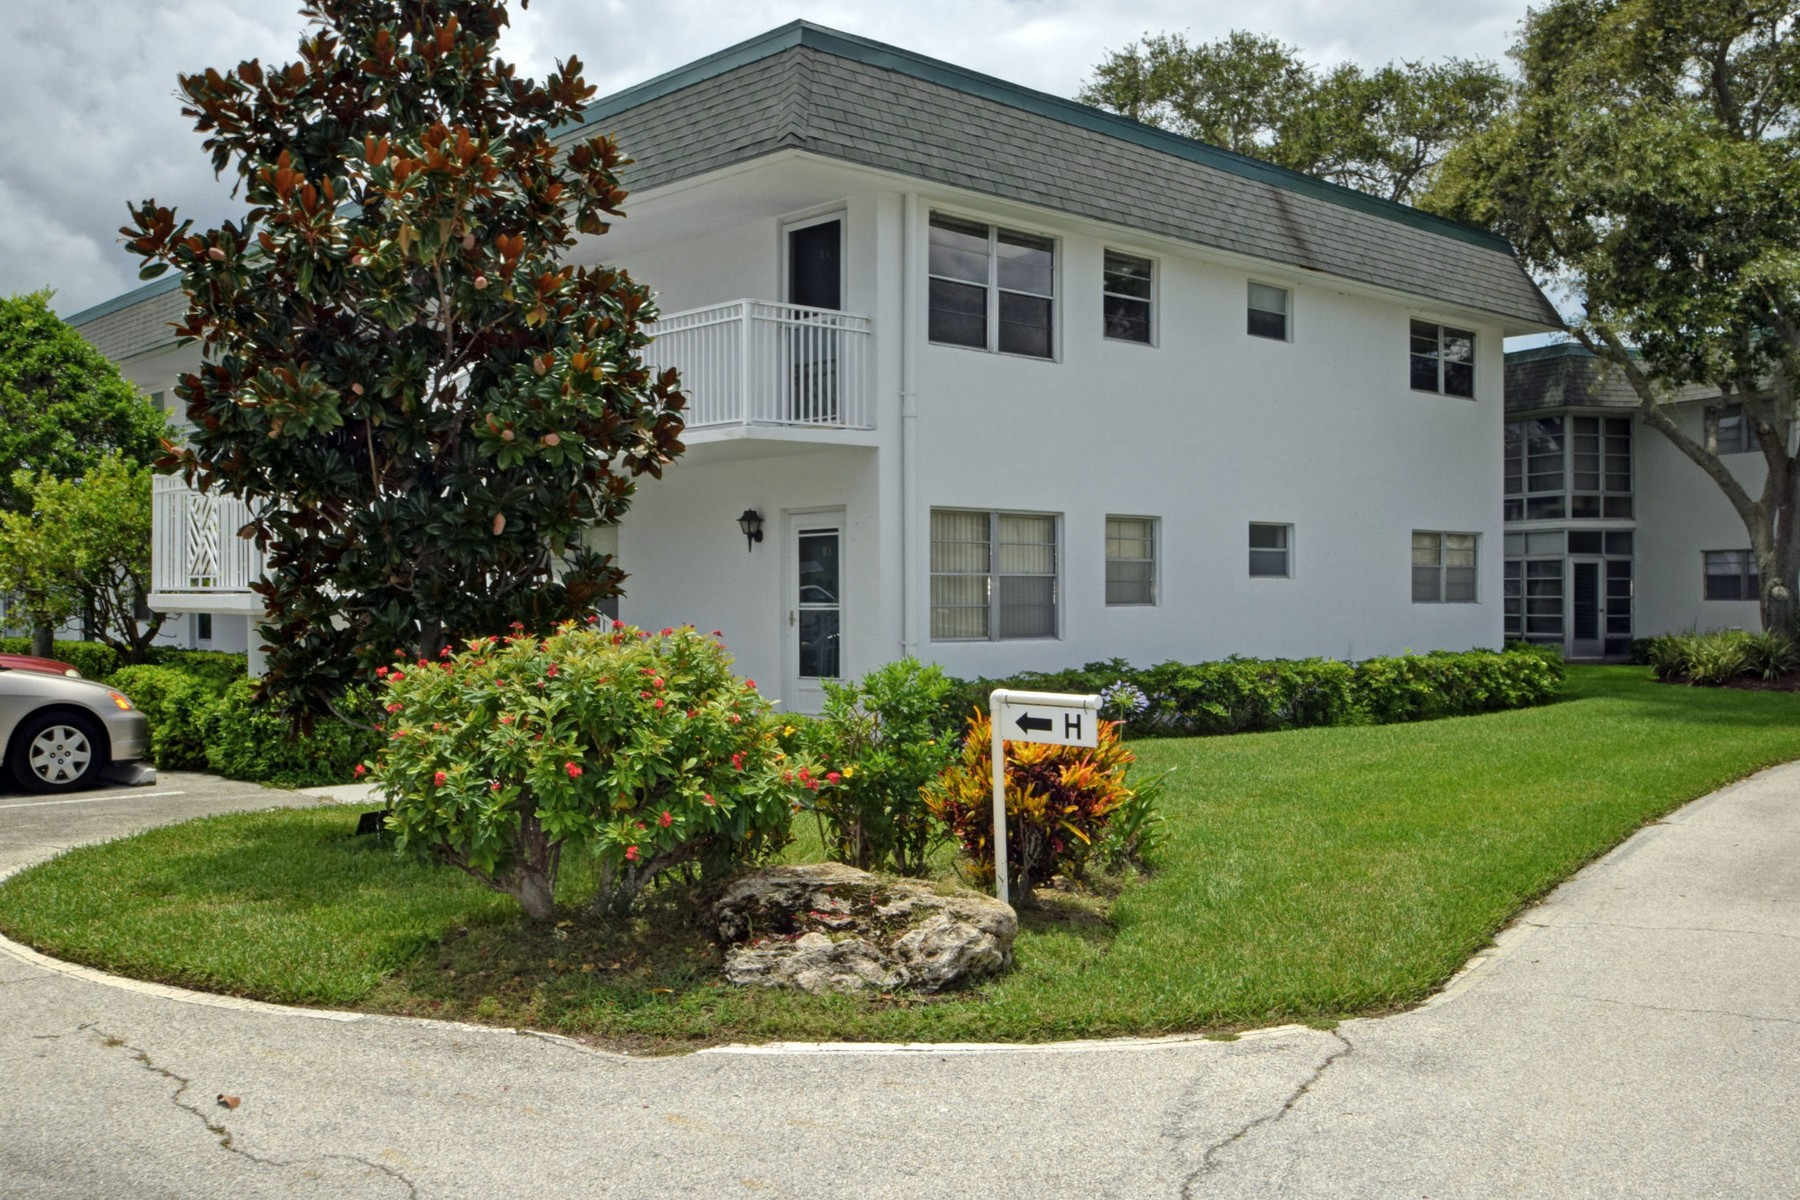 Condominium for Sale at Love It Yourself Or Keep the Tenant 2800 Indian River Blvd #H6 Vero Beach, Florida, 32960 United States